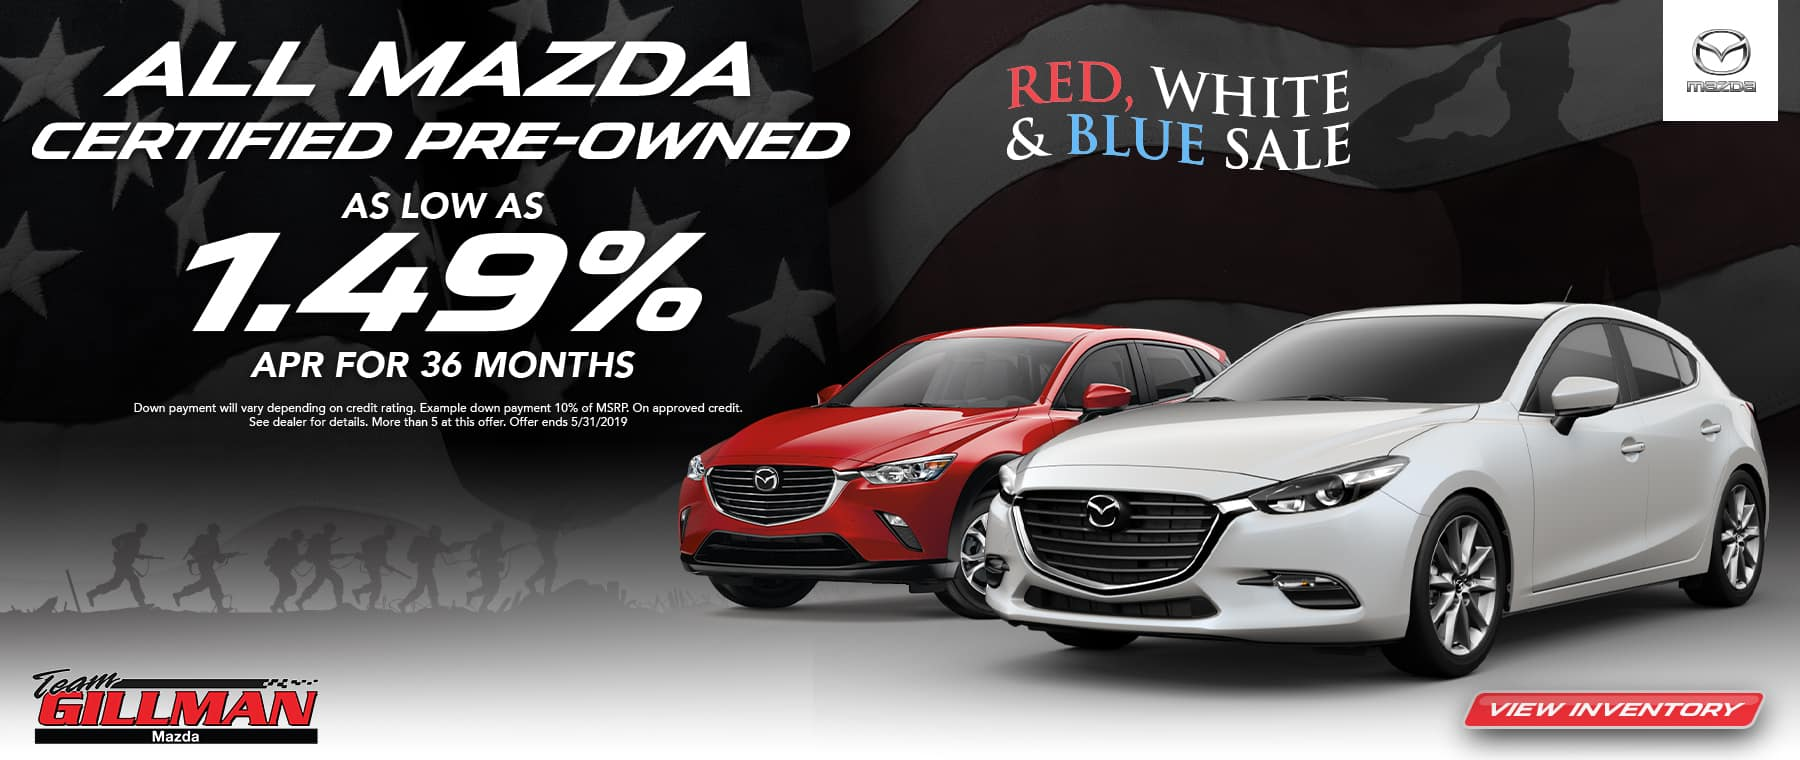 All-Mazda-Certified-Pre-Owned